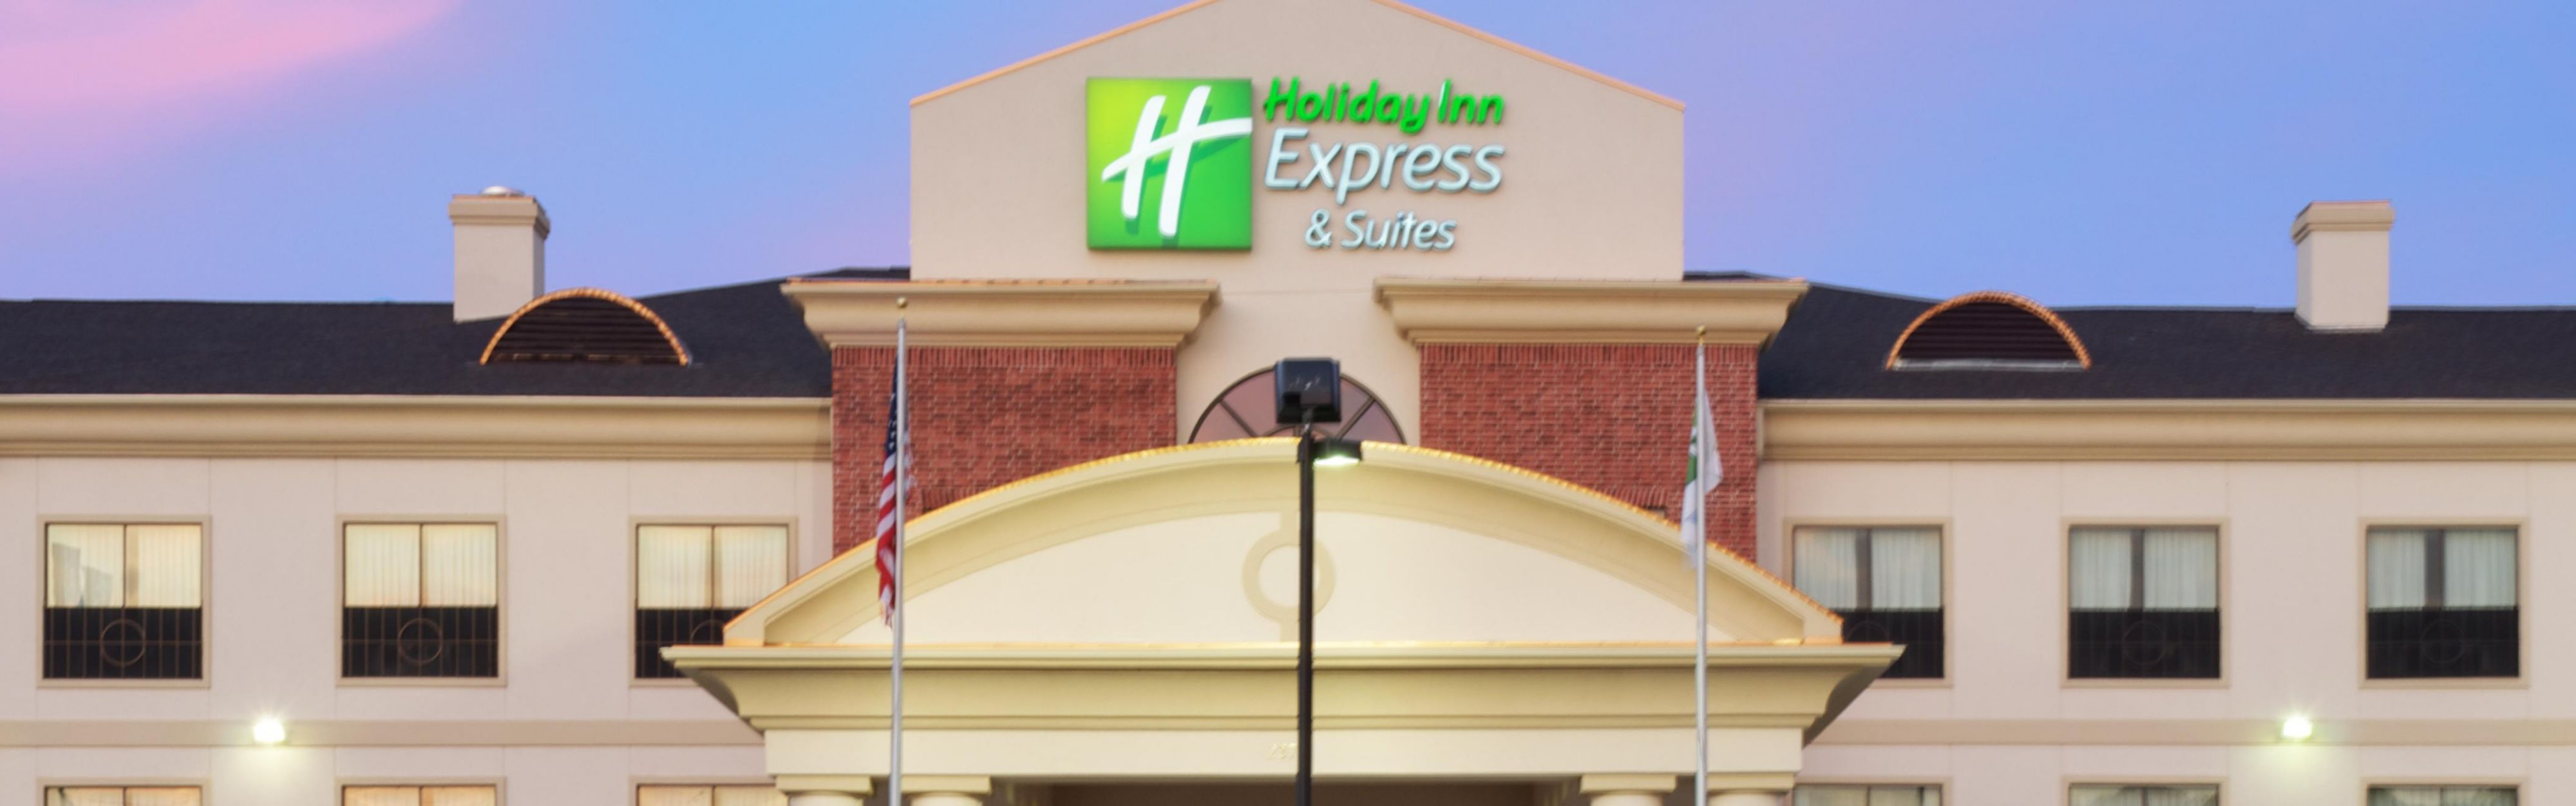 Holiday Inn Express & Suites Sealy image 0